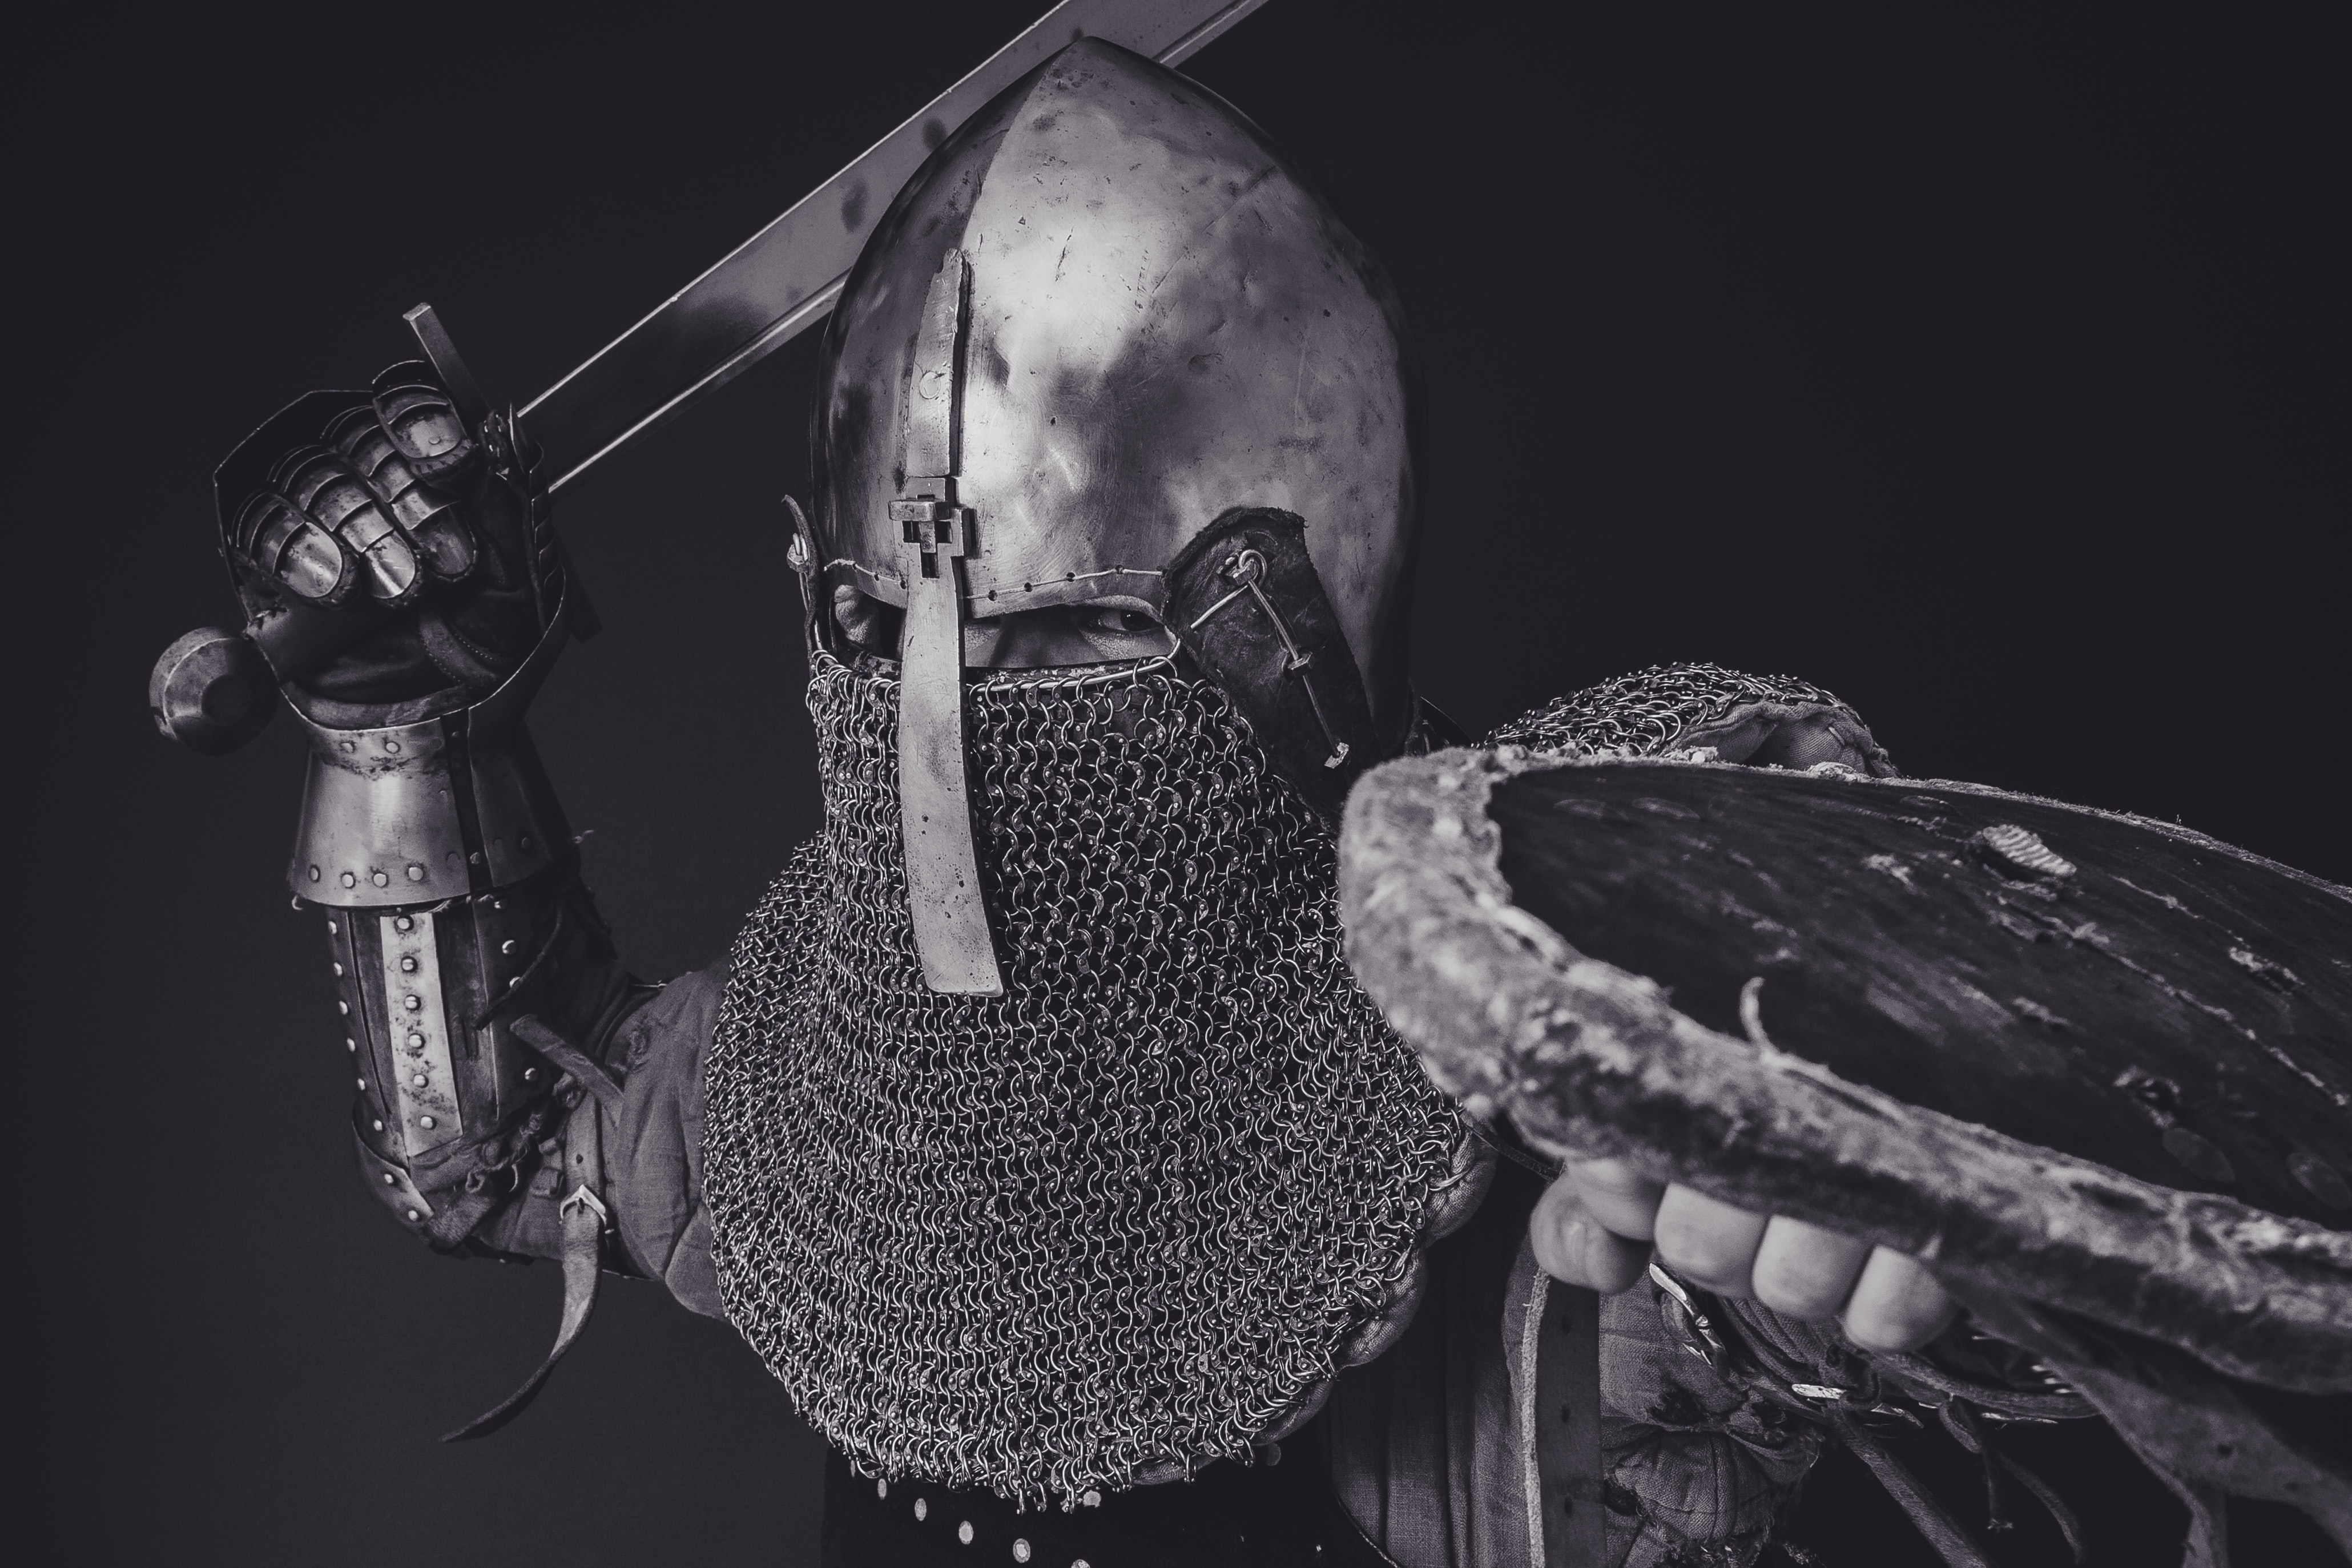 black and white portrait of a man in Medieval armor, getting ready to swing a sword.